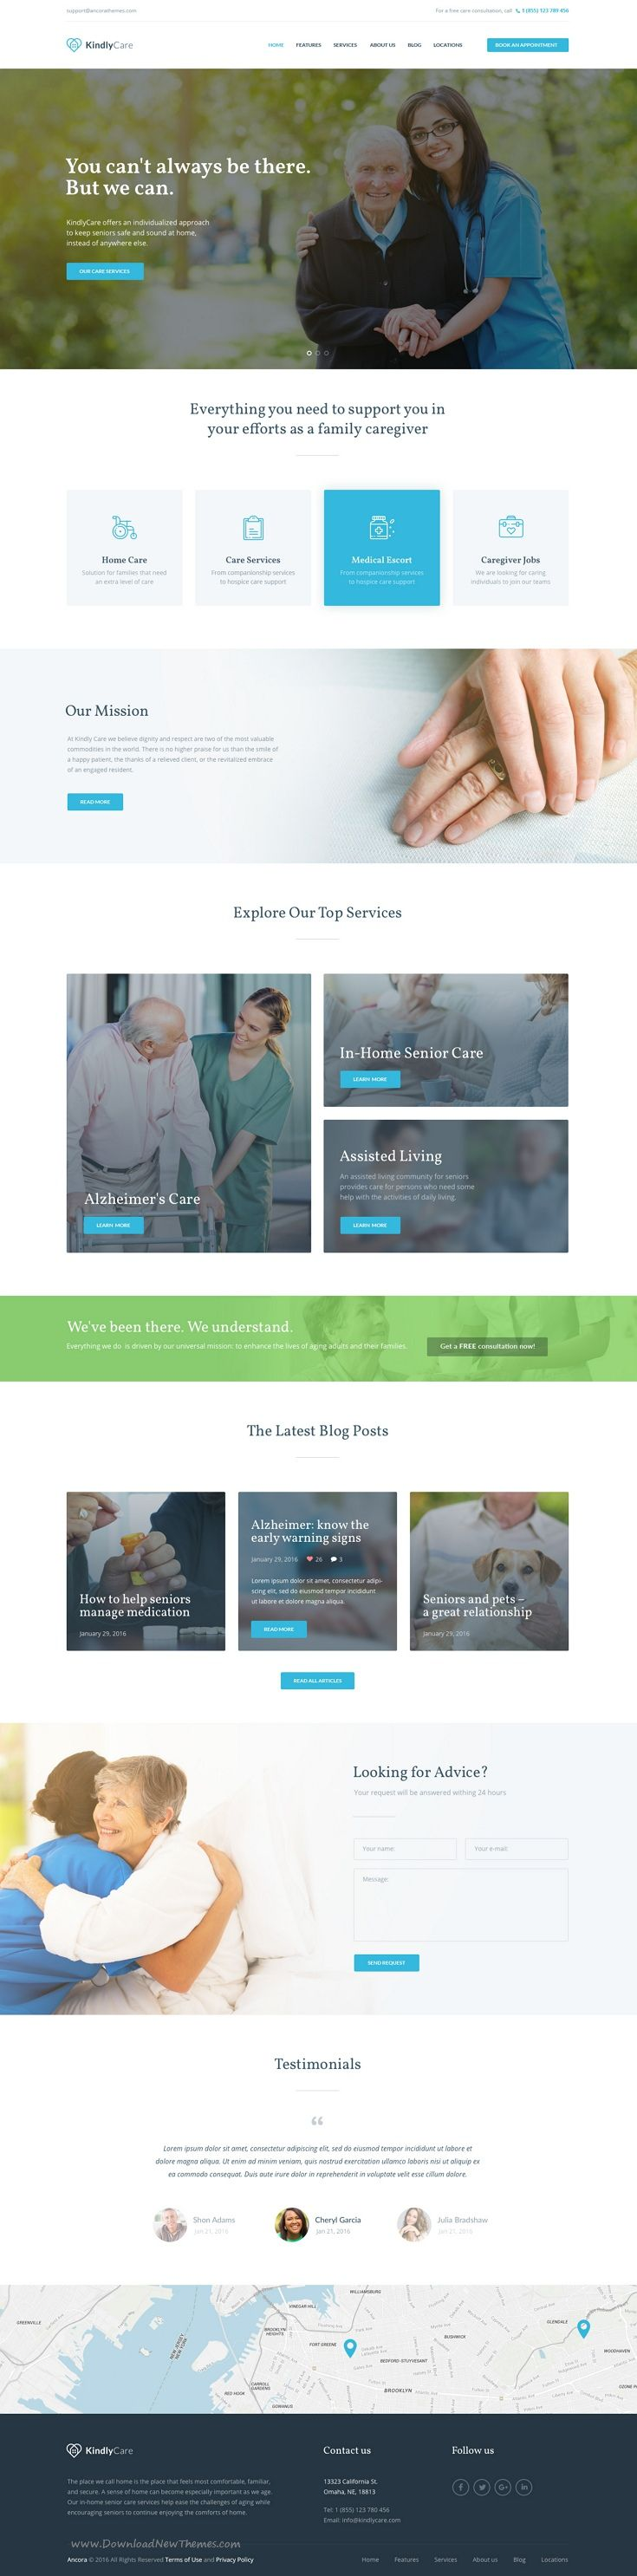 KindlyCare Theme is especially created for Senior Care WordPress Websites, but it can be easily adapted for Senior Living, Assisted Living, #Nursing Home & #Medical type of #websites.